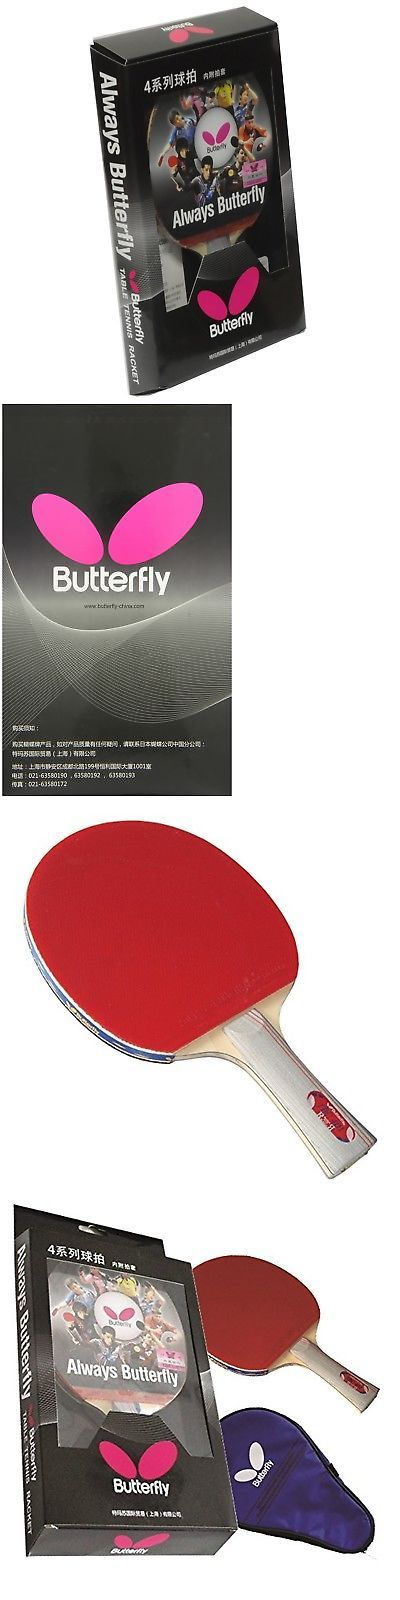 Paddles 36277: Butterfly 401 Shakehand Table Tennis Racket New -> BUY IT NOW ONLY: $34.14 on eBay!